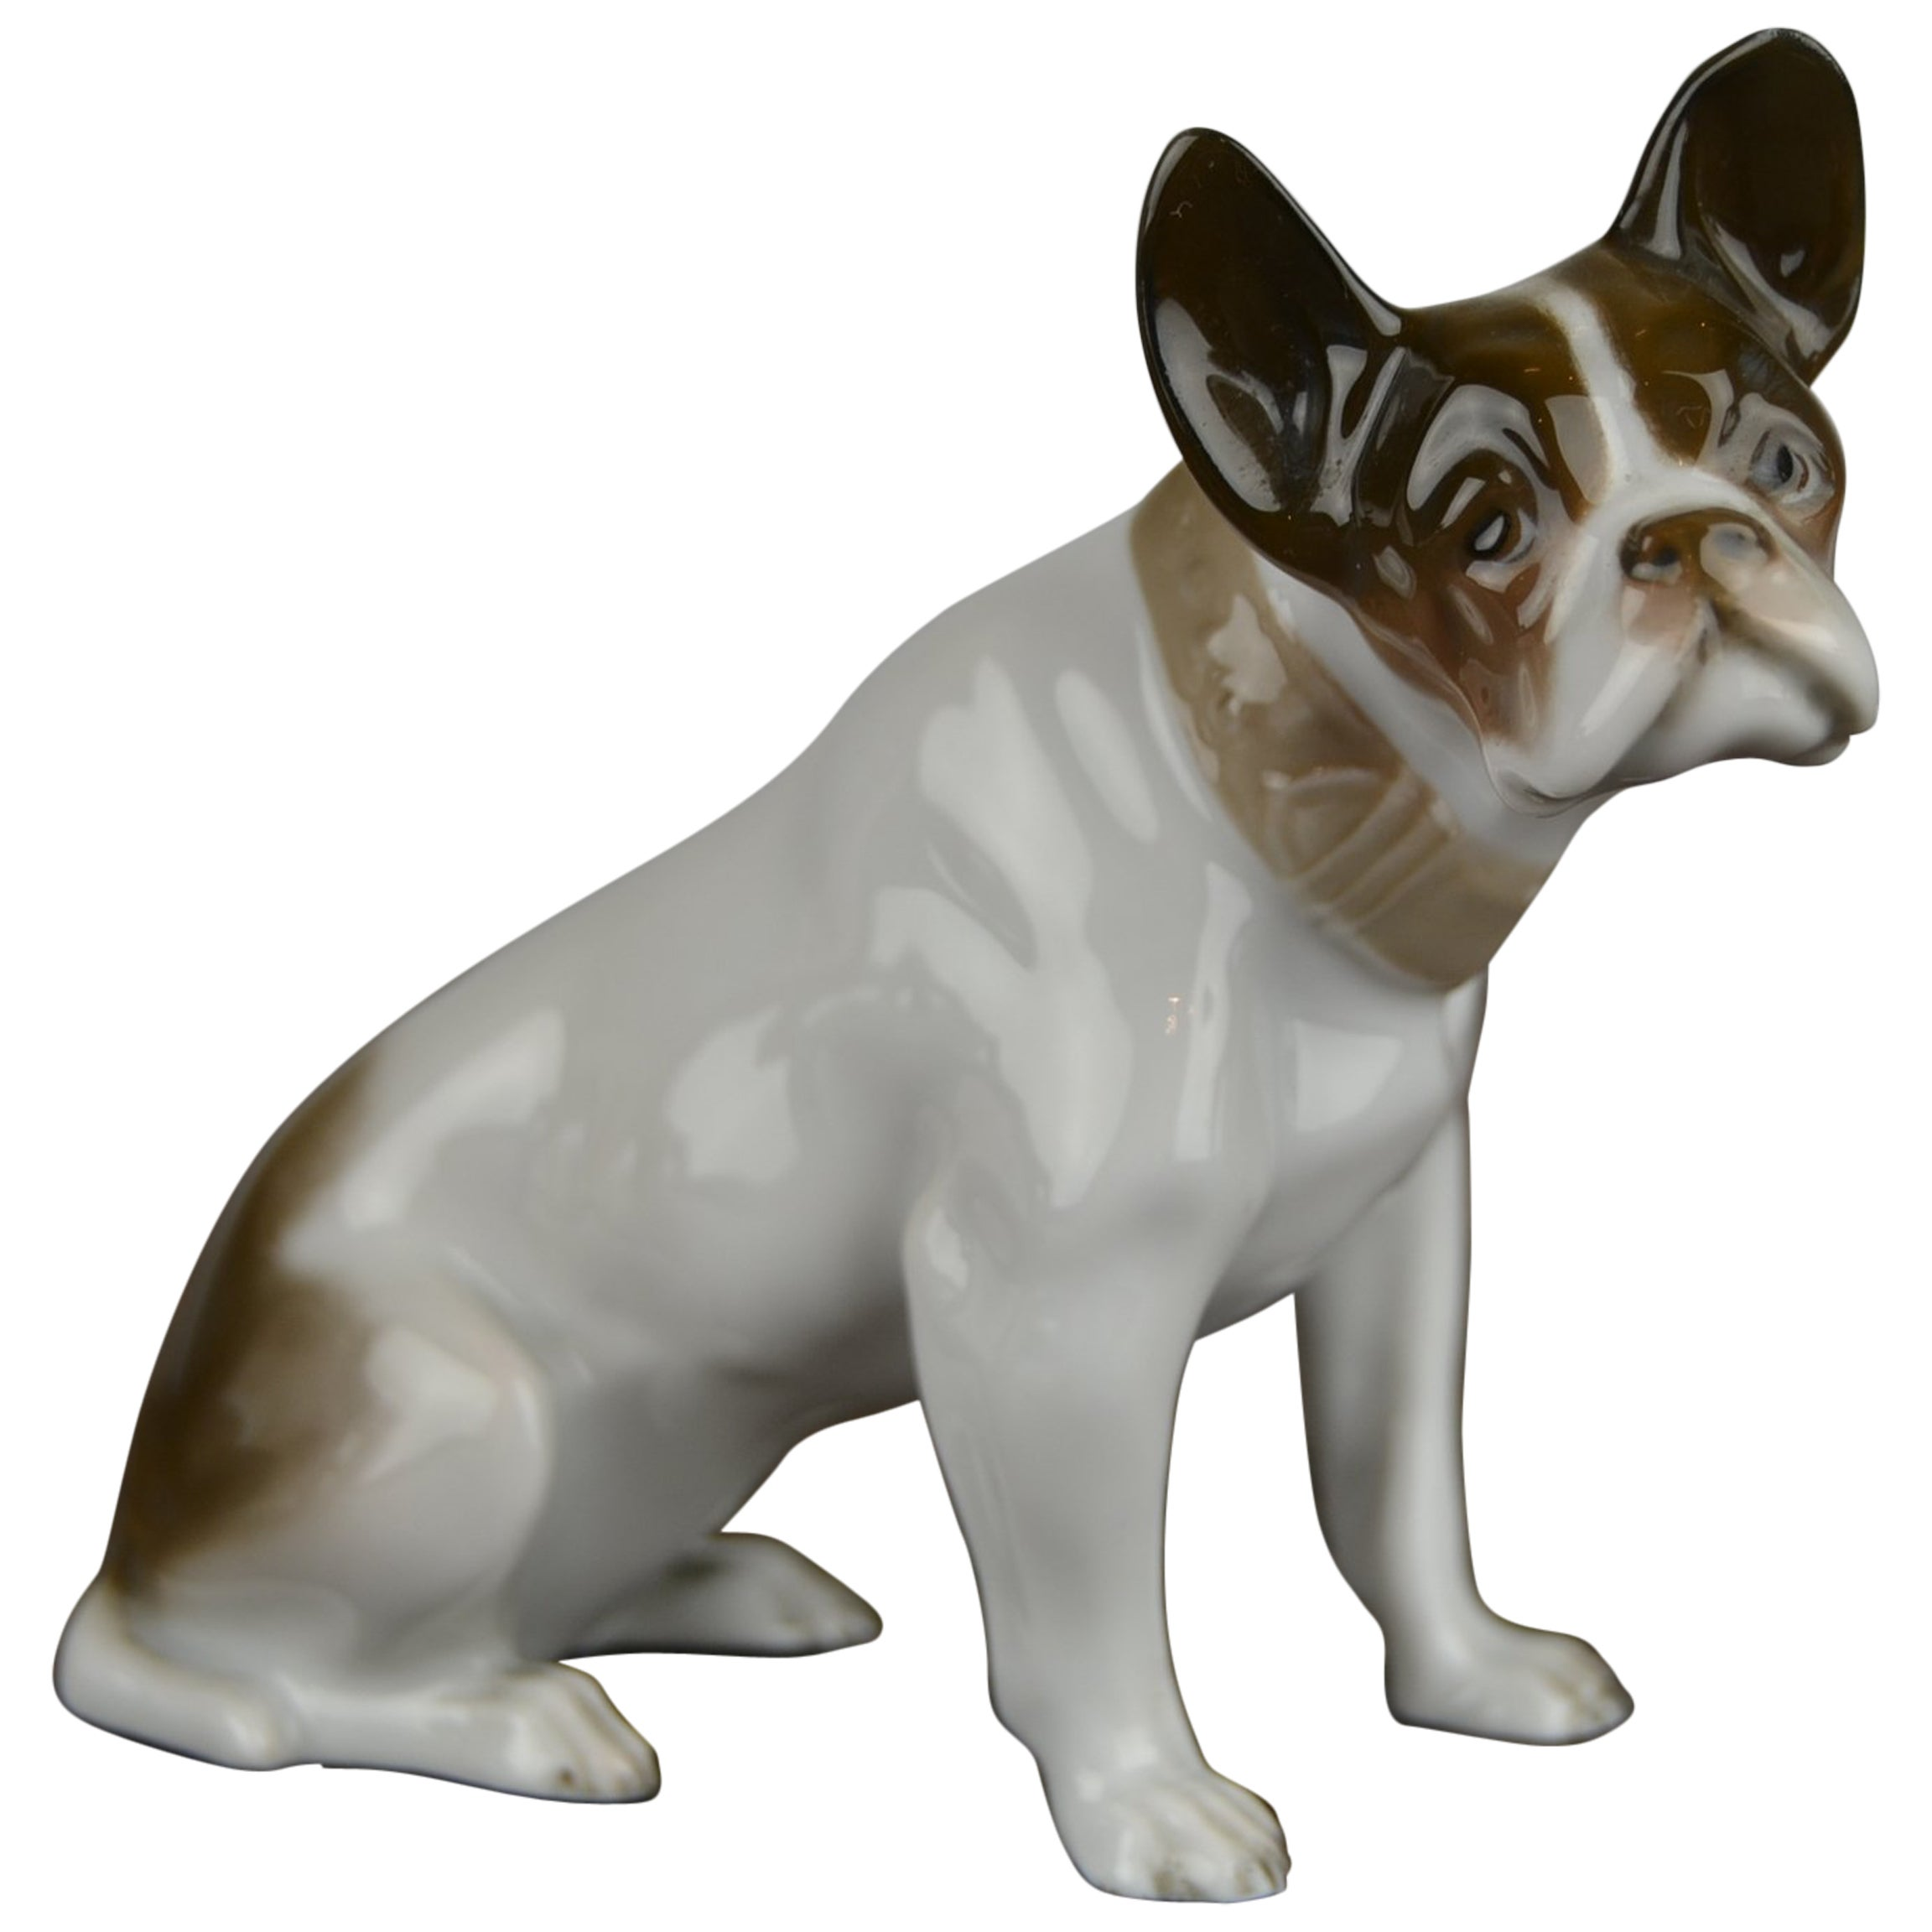 1920s French Bulldog Figurine Rosenthal Selb Bavaria Germany, Art Deco Porcelain